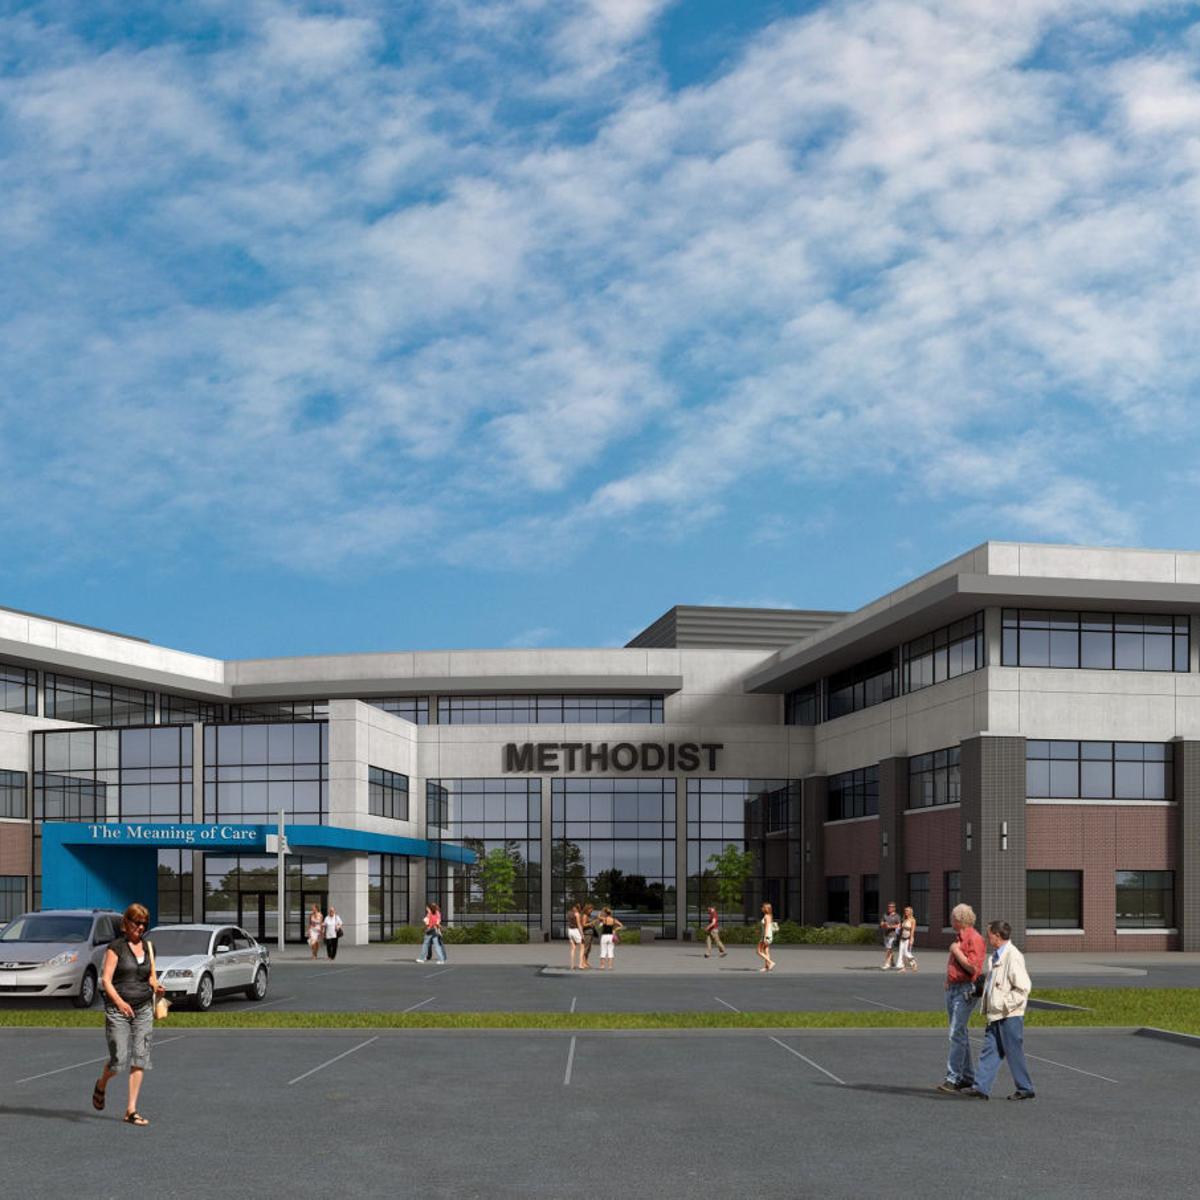 Methodist Health moves headquarters to 168th Street, but the